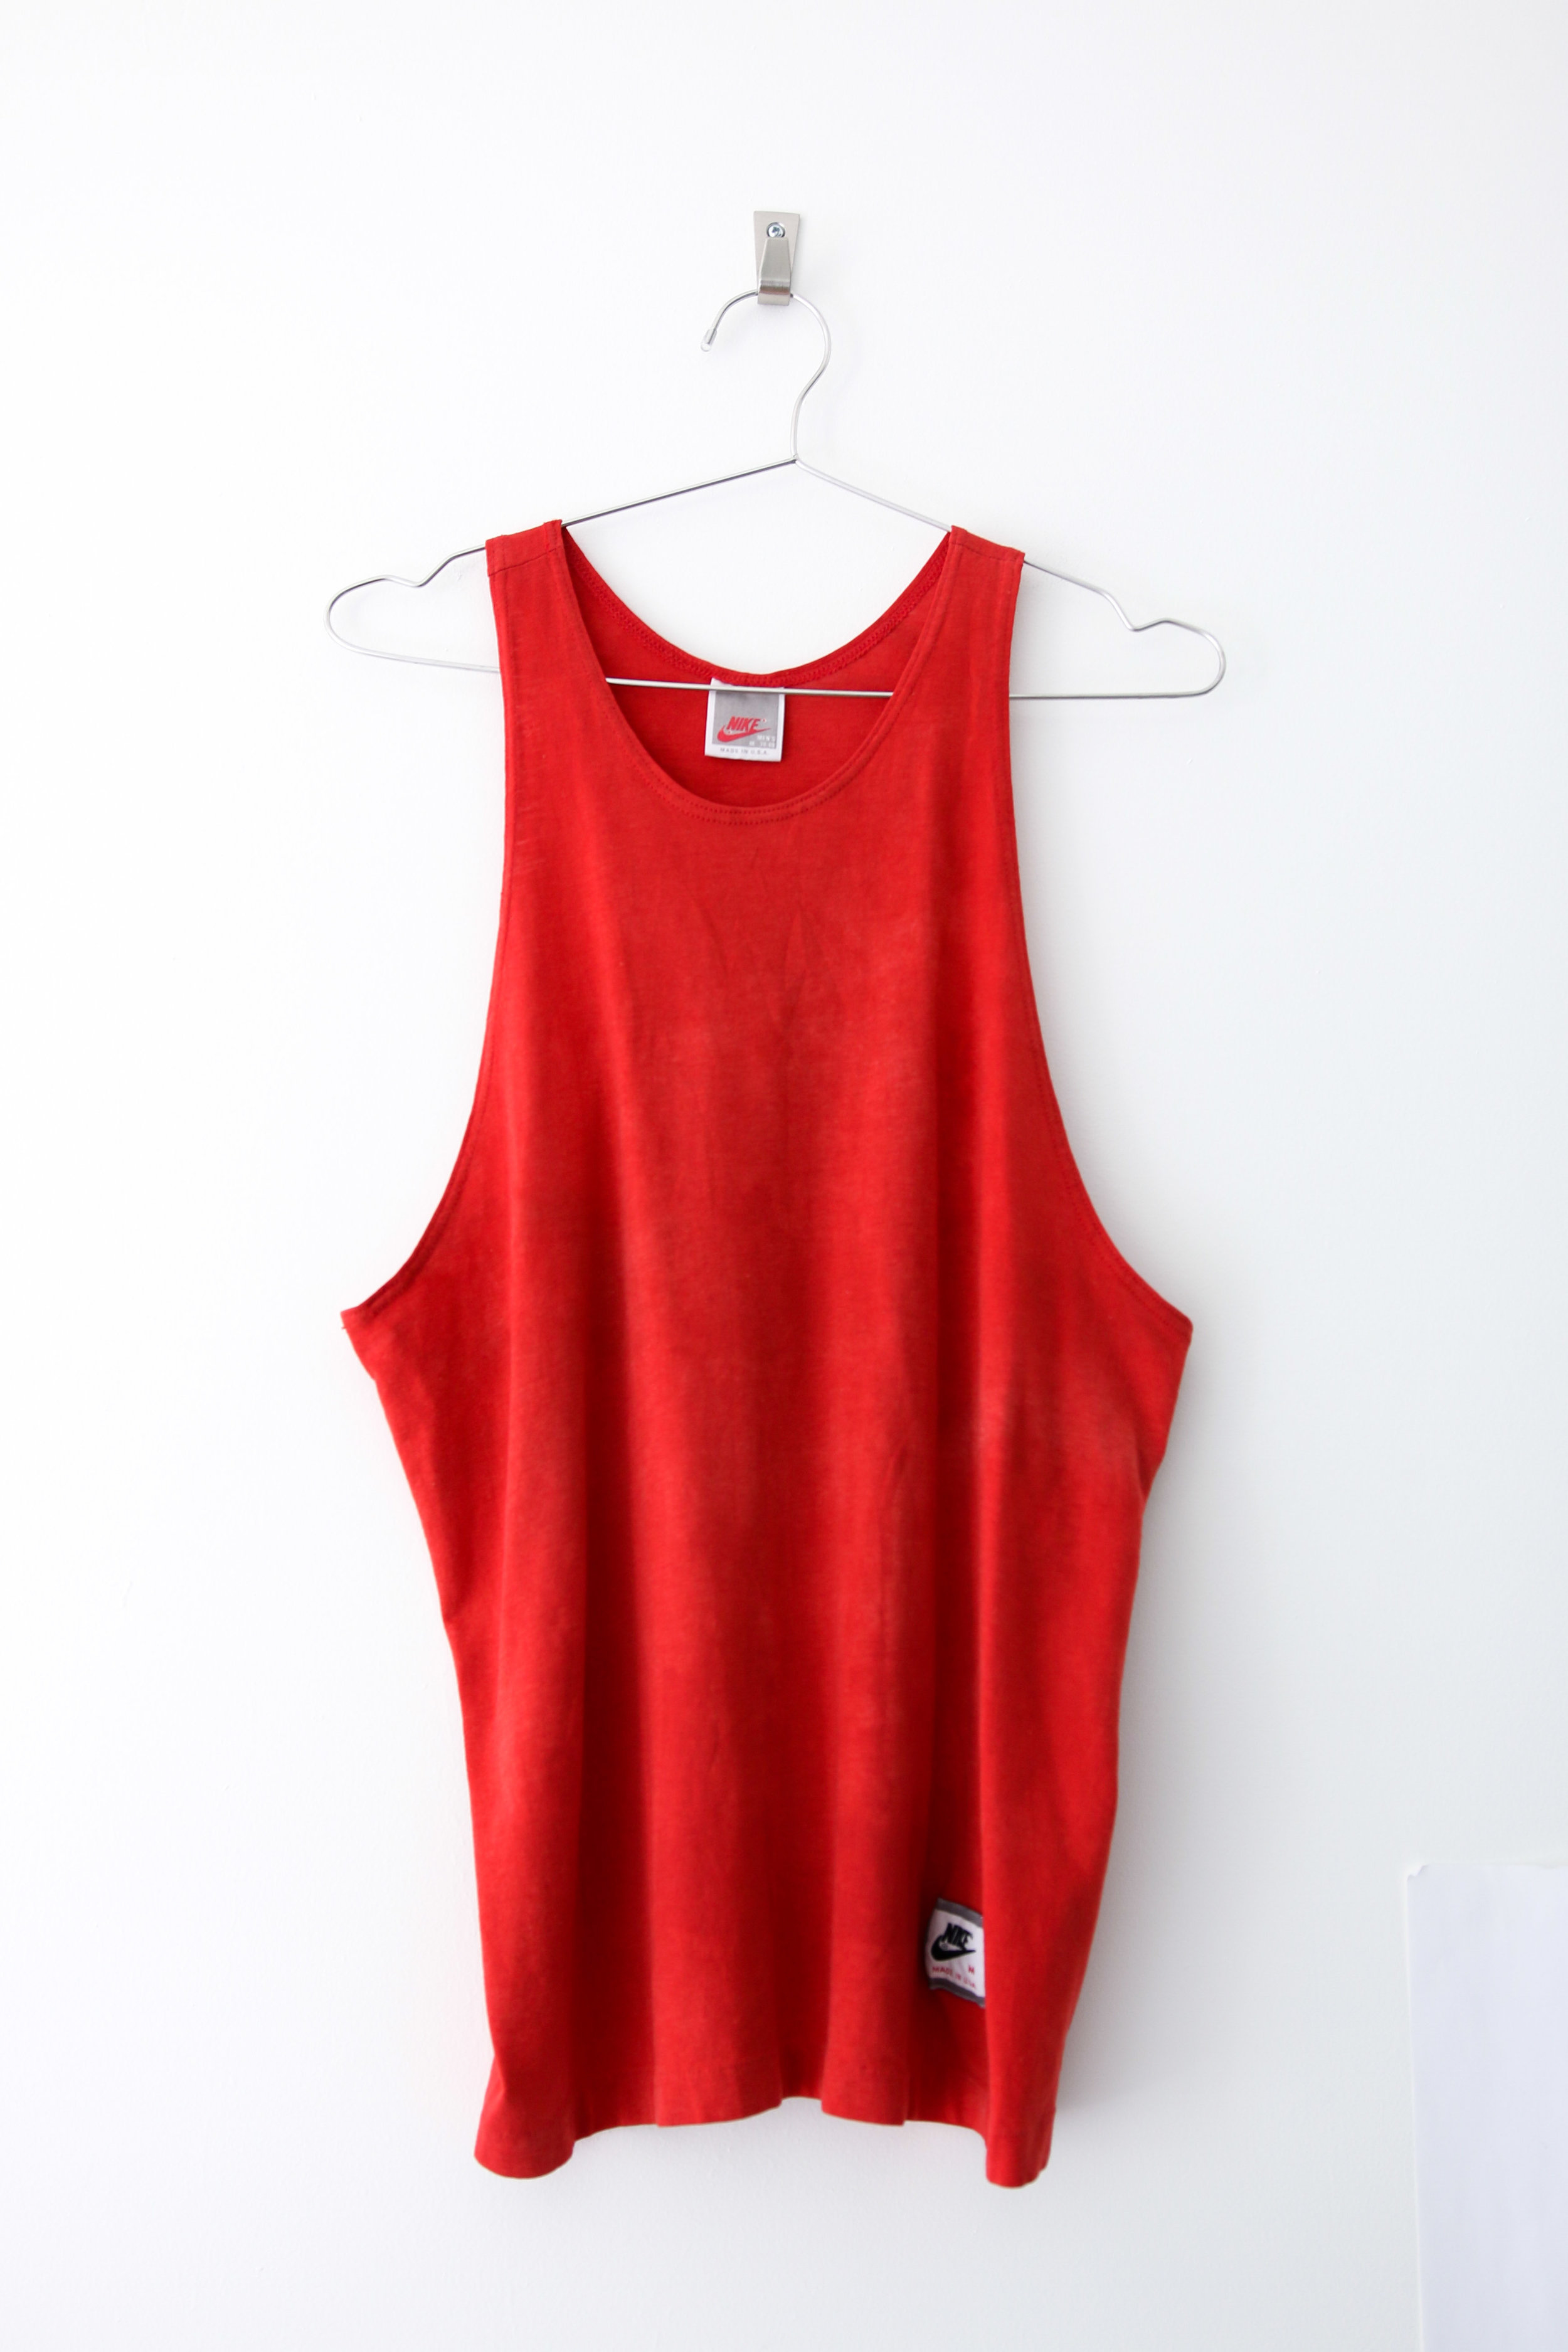 44b2f106c3d3 S   M - Nike Faded Tank - Red — THE CONSISTENCY PROJECT